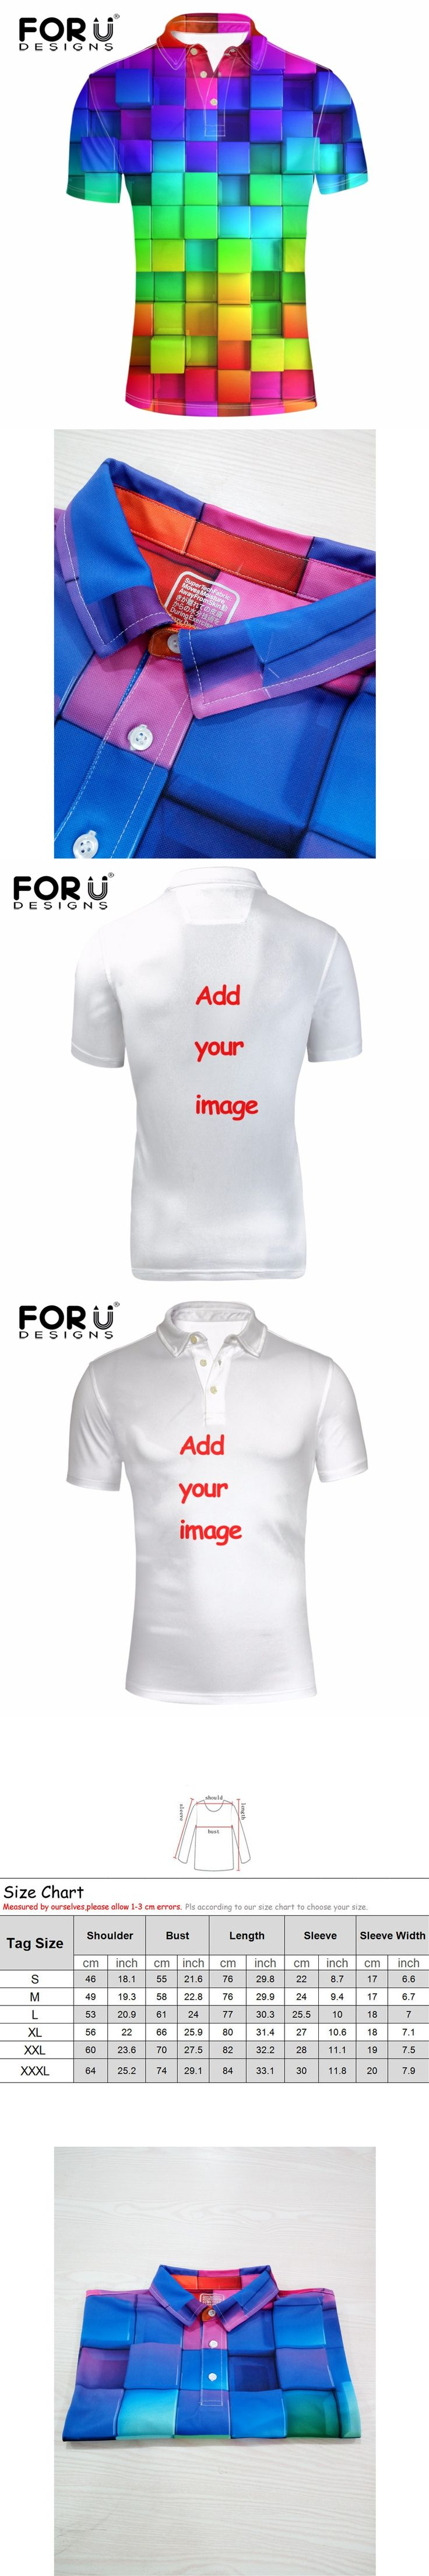 FORUDESIGNS 2017 New Arrival Polo Shirt Customize Man Polos Personalized Shirt Summer Short Sleeve 3D Printed Polo Shirt XS-XXXL